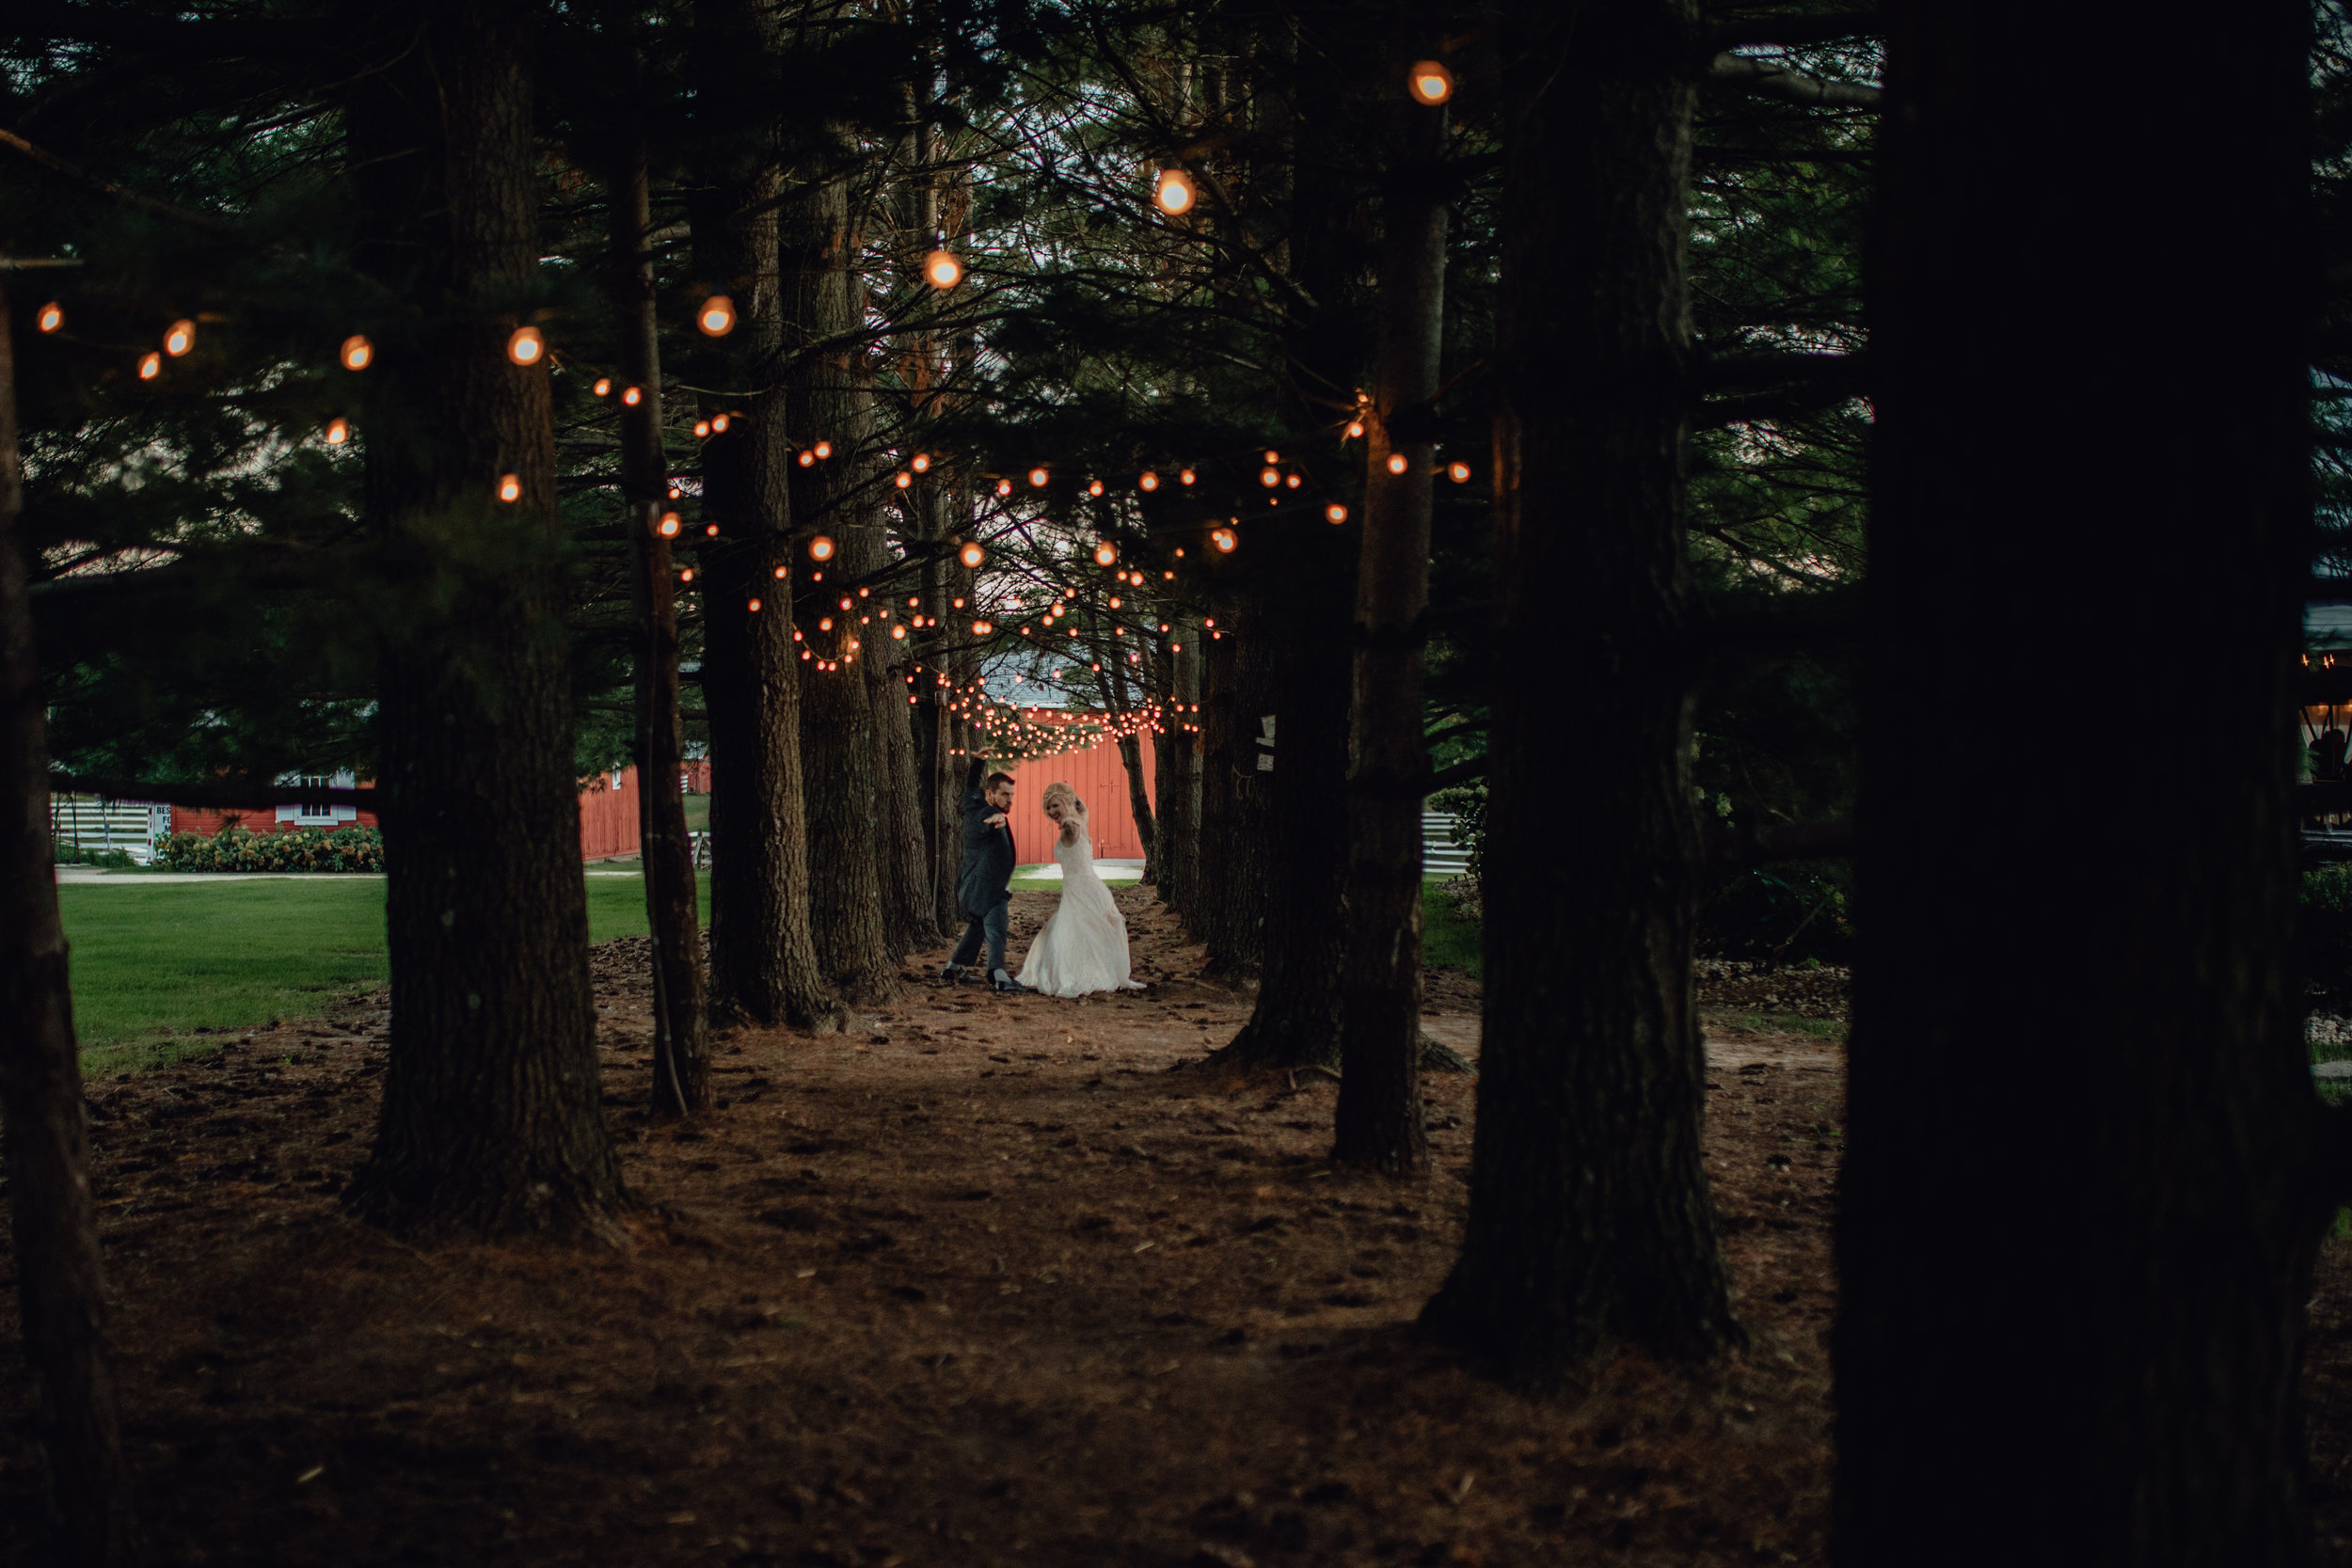 bride and groom under string lights in forest at oak hill weddings path of pines